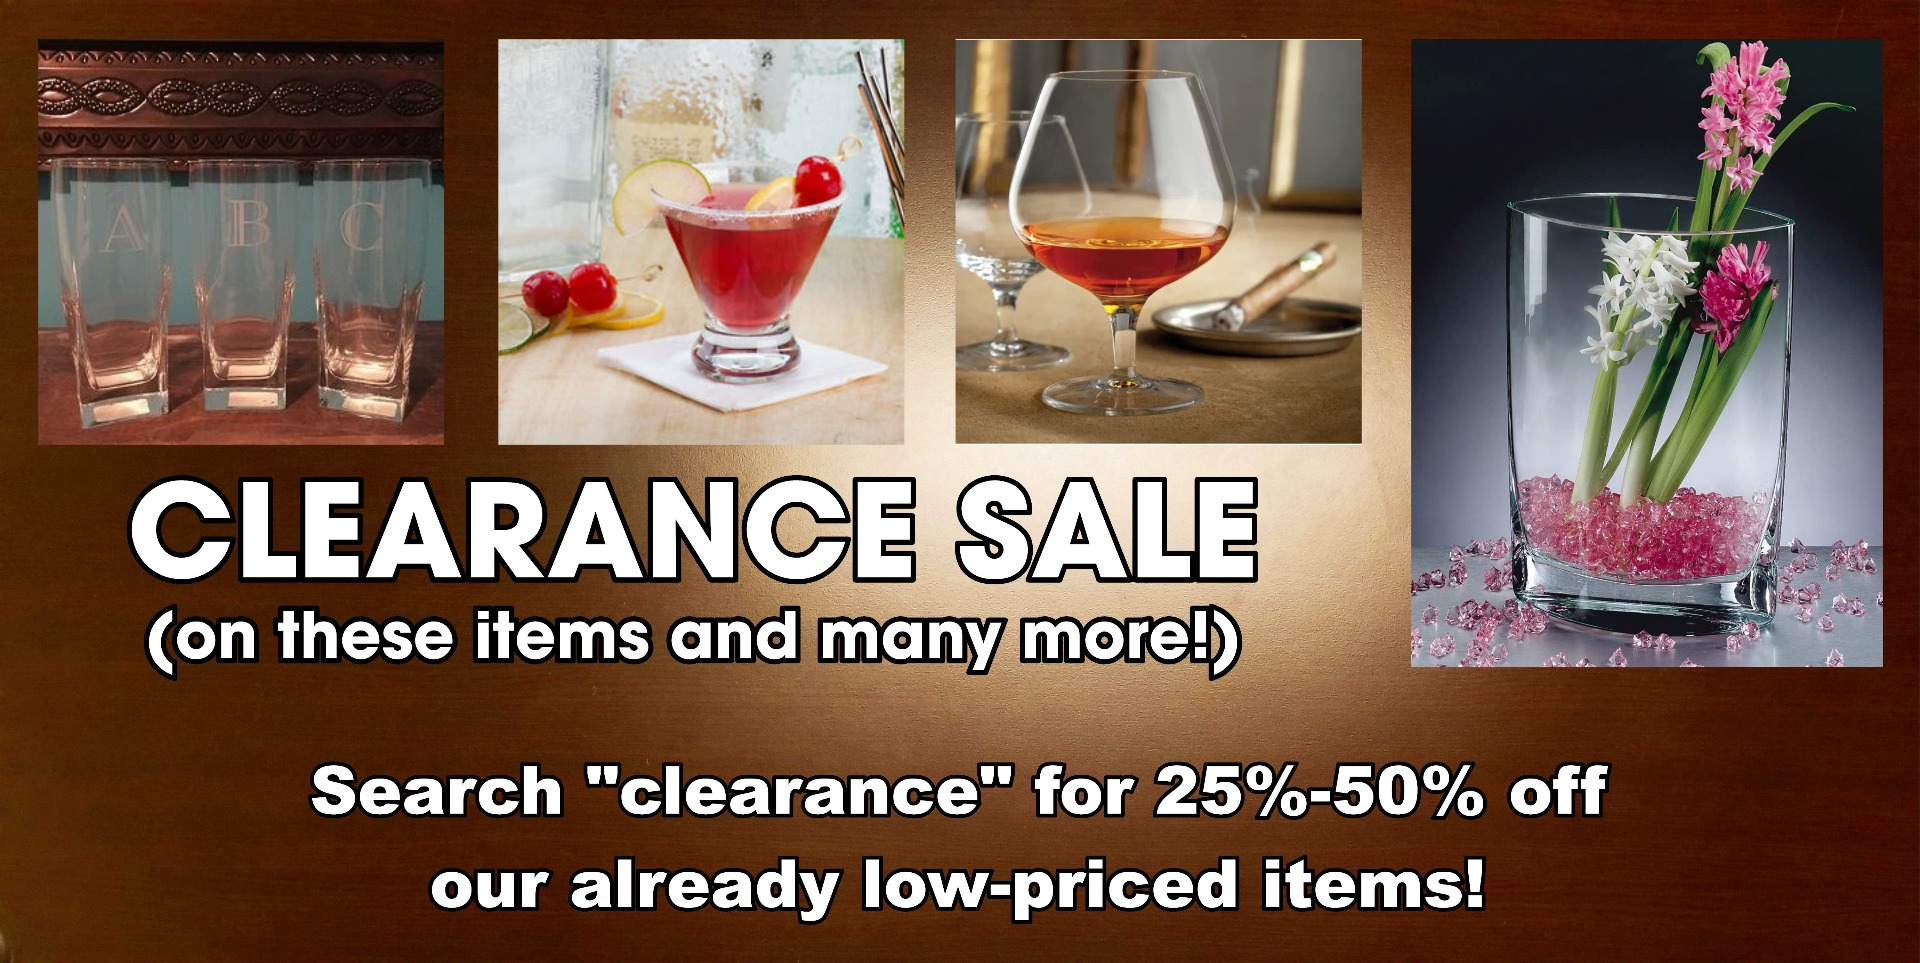 Clearance Sale for 25% to 50% Off